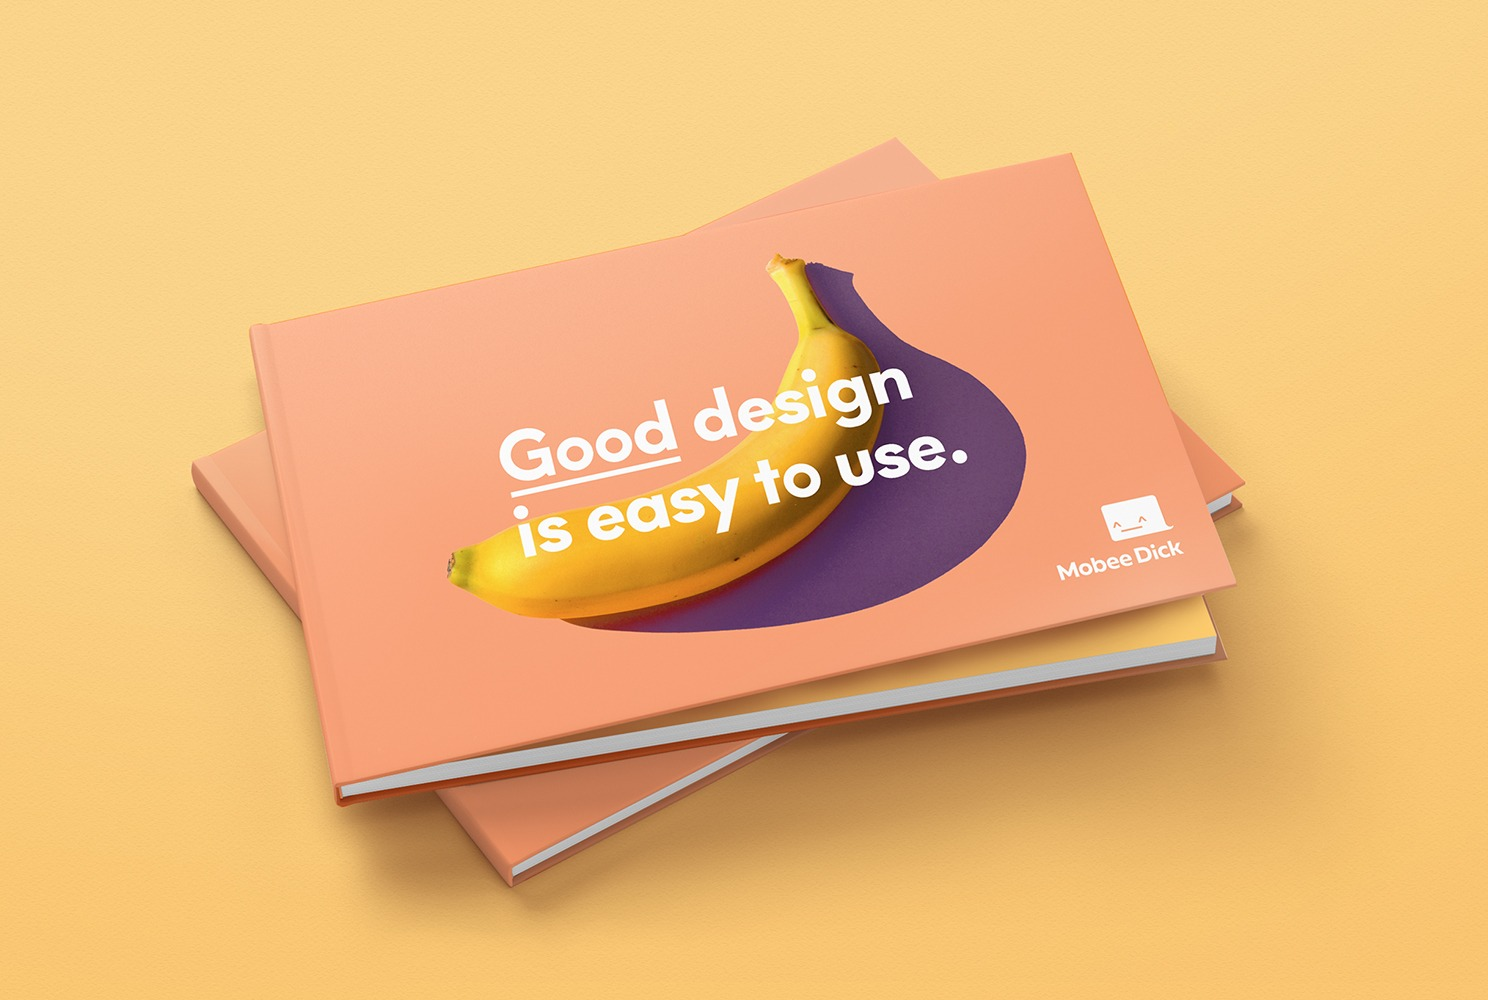 Redkroft. – brand design studio Mobee Dick – the most mobile branding in the UX industry.